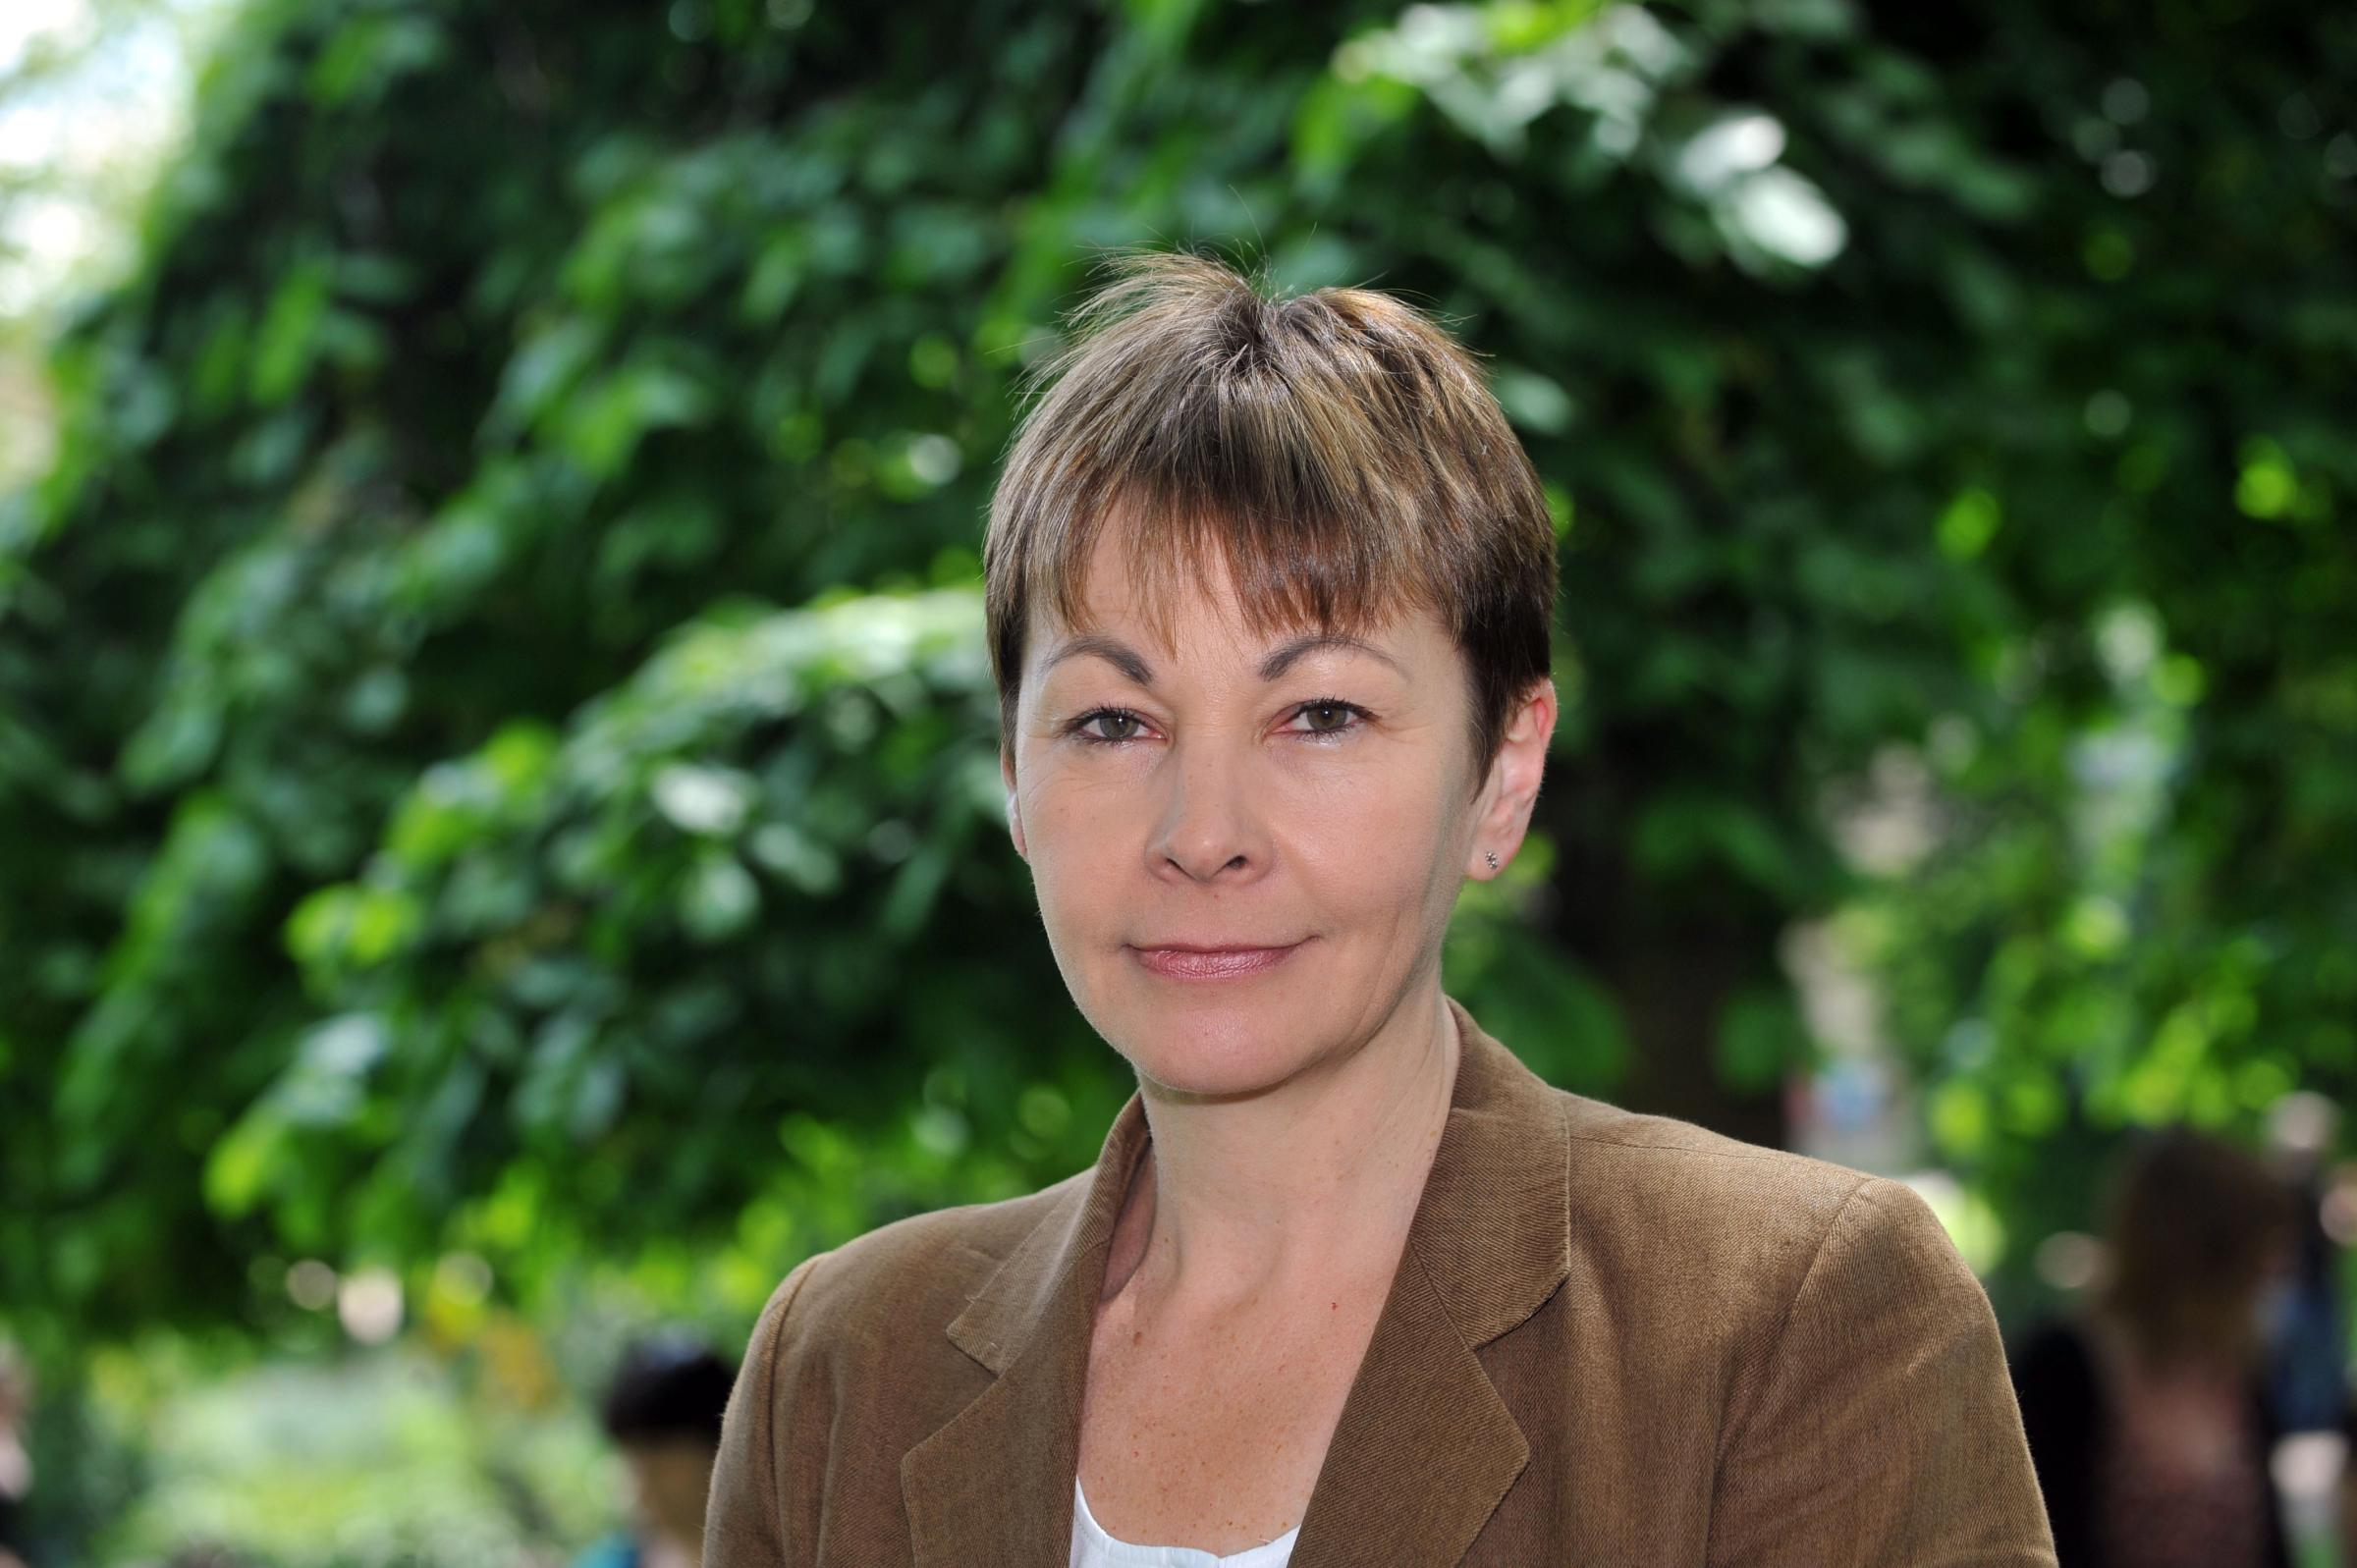 Brighton Pavilion MP Caroline Lucas has called for the city to reconsider its stance on drug consumption rooms which were rejected two years ago.